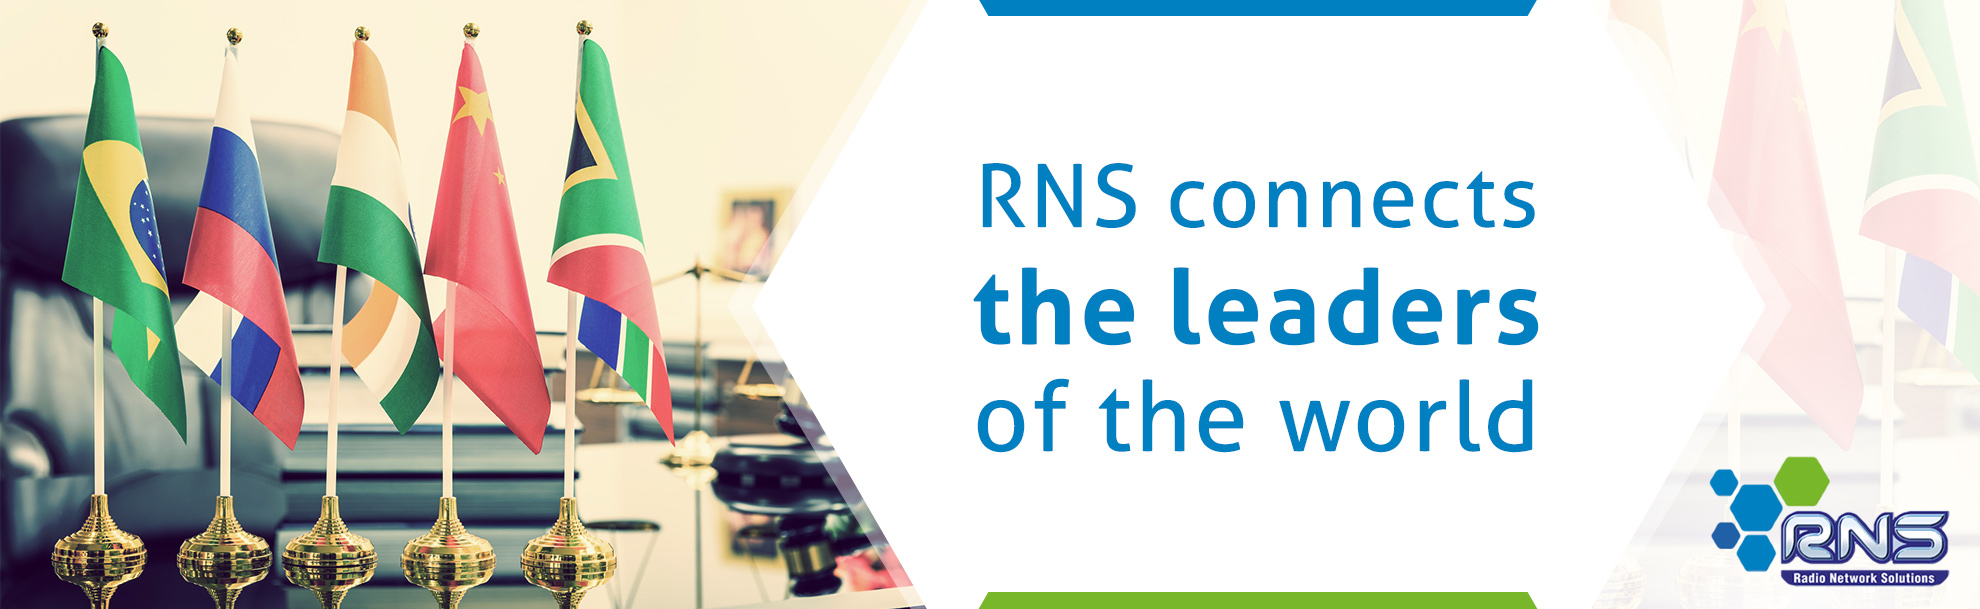 RNS connects the leaders of the world